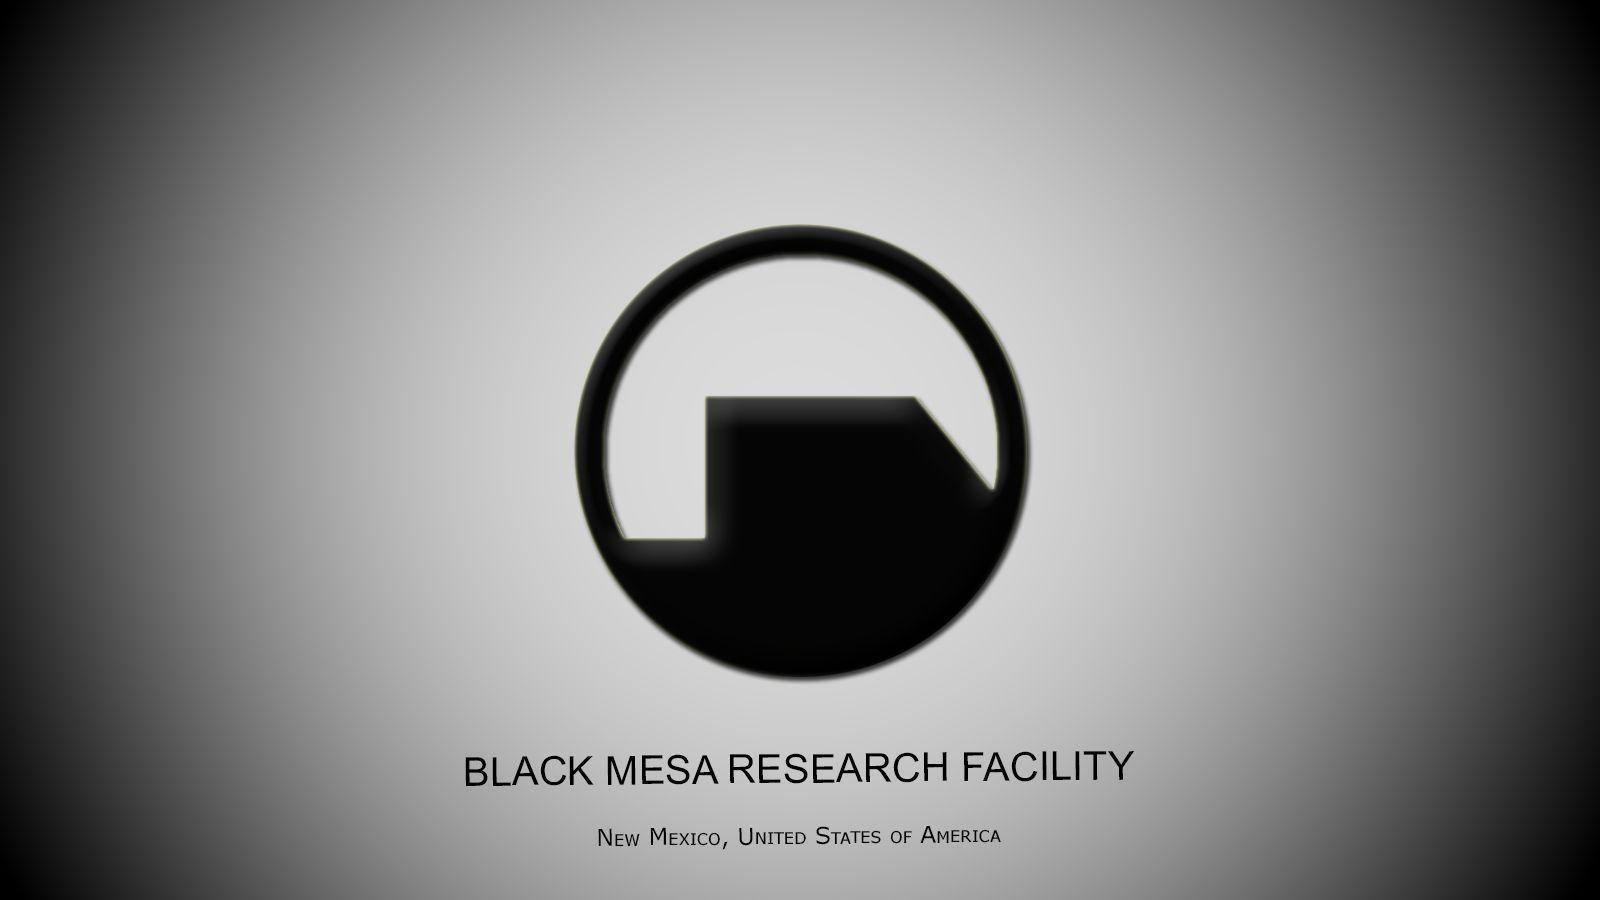 Black Mesa Desktop Wallpaper by steffono6 on DeviantArt